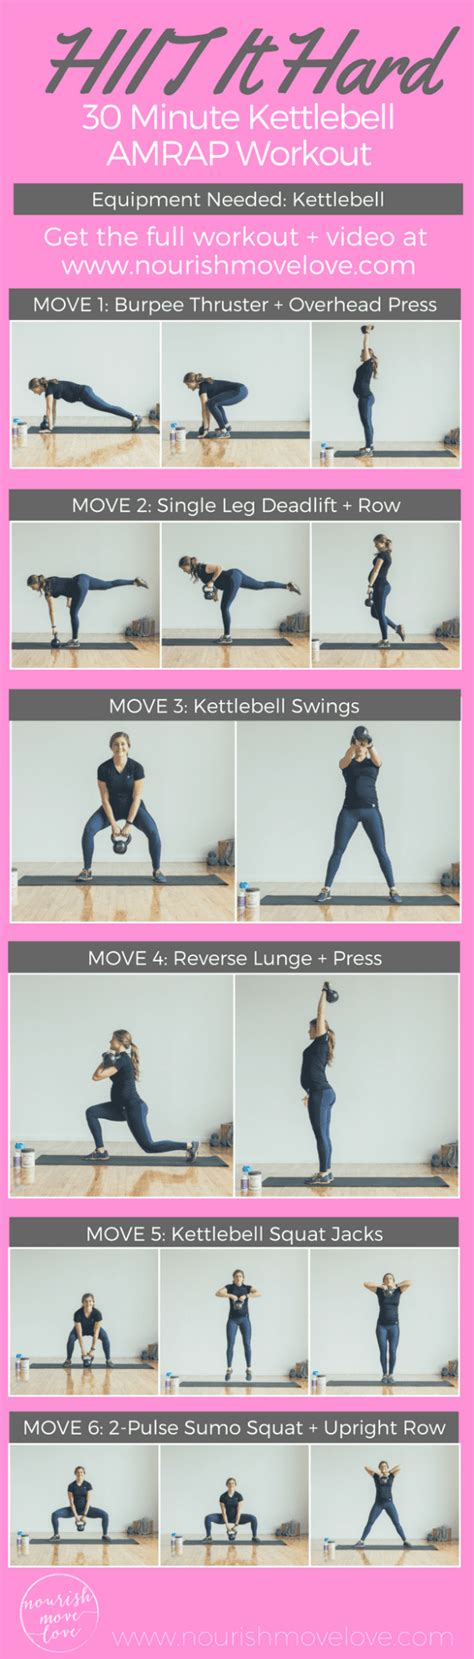 kettlebell workout hiit amrap minute hard workouts sumo body kettle bell pyramid squat nourishmovelove exercises upright swings move killer min